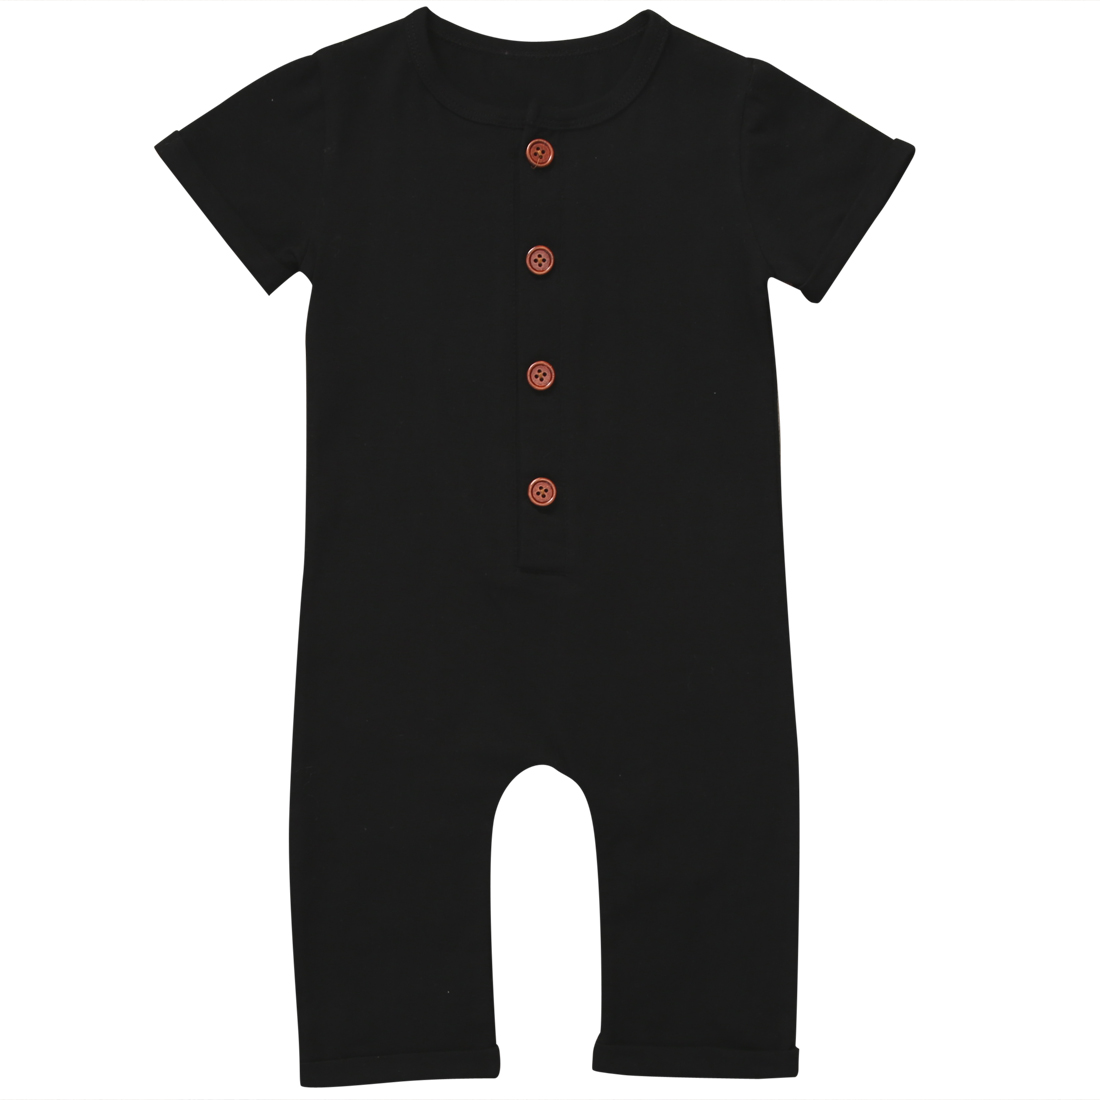 Newborn Kids Baby Boy Girl Two Colors Solid Cotton Short Sleeve Button Romper Clothes 0-24M недорго, оригинальная цена